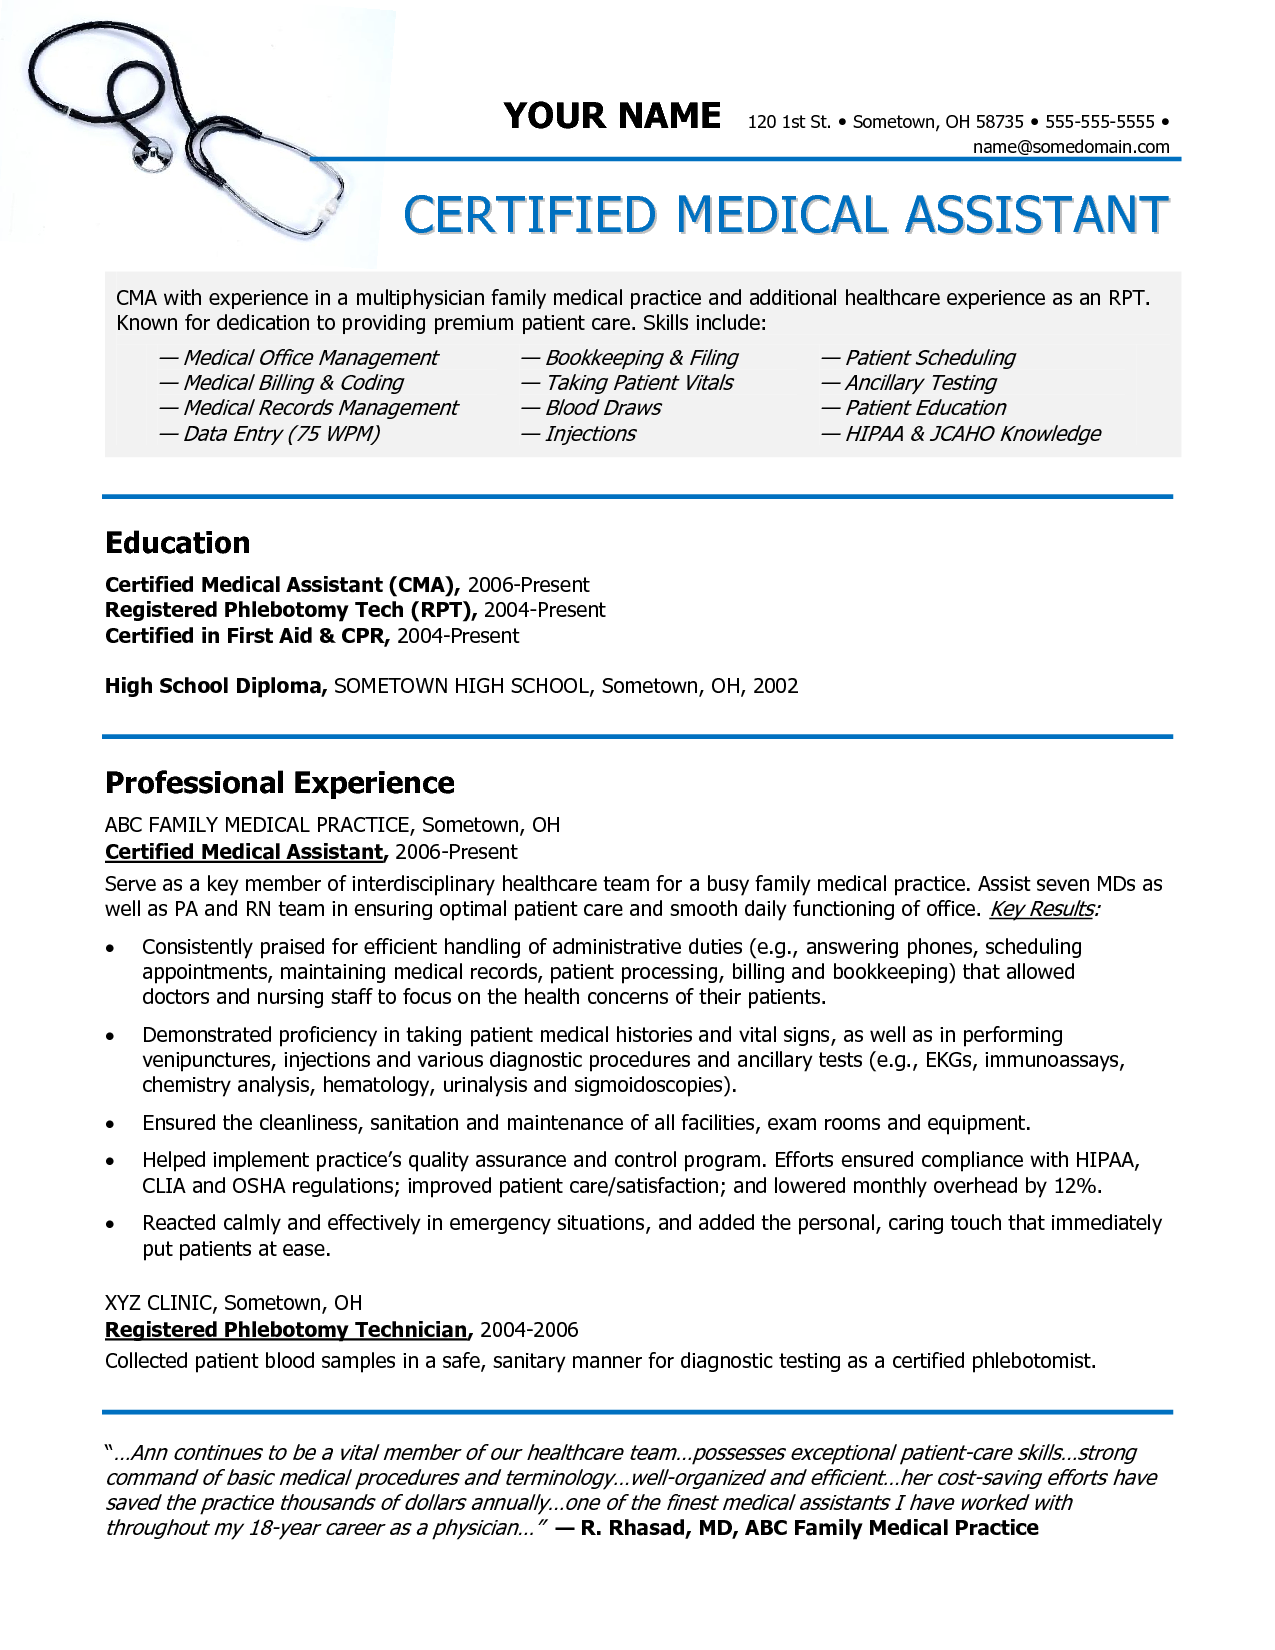 Objective For Resume Medical Assistant Medical Assistant Resume Sample,  Medical Resume Templates 14 Medical Assistant Resume Uxhandycom, Medical  Assistant ...  Certified Nursing Assistant Resume Objective